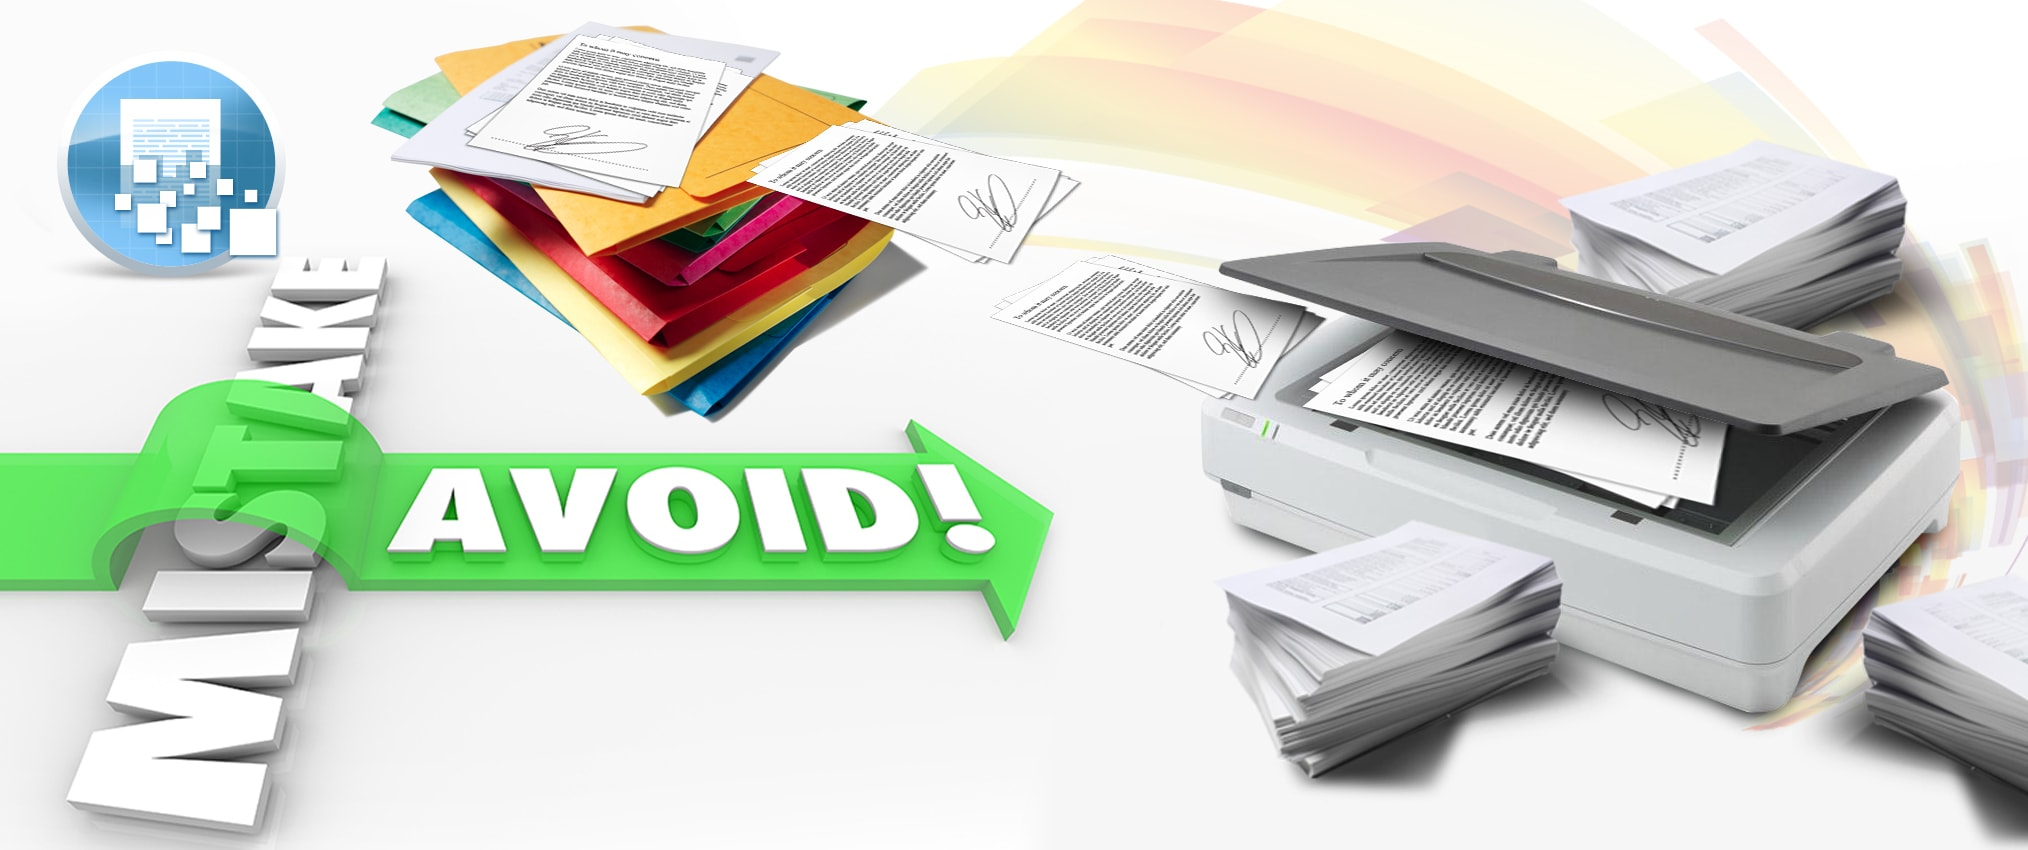 how-to -avoid-mistakes-when-scanning-important-documents-